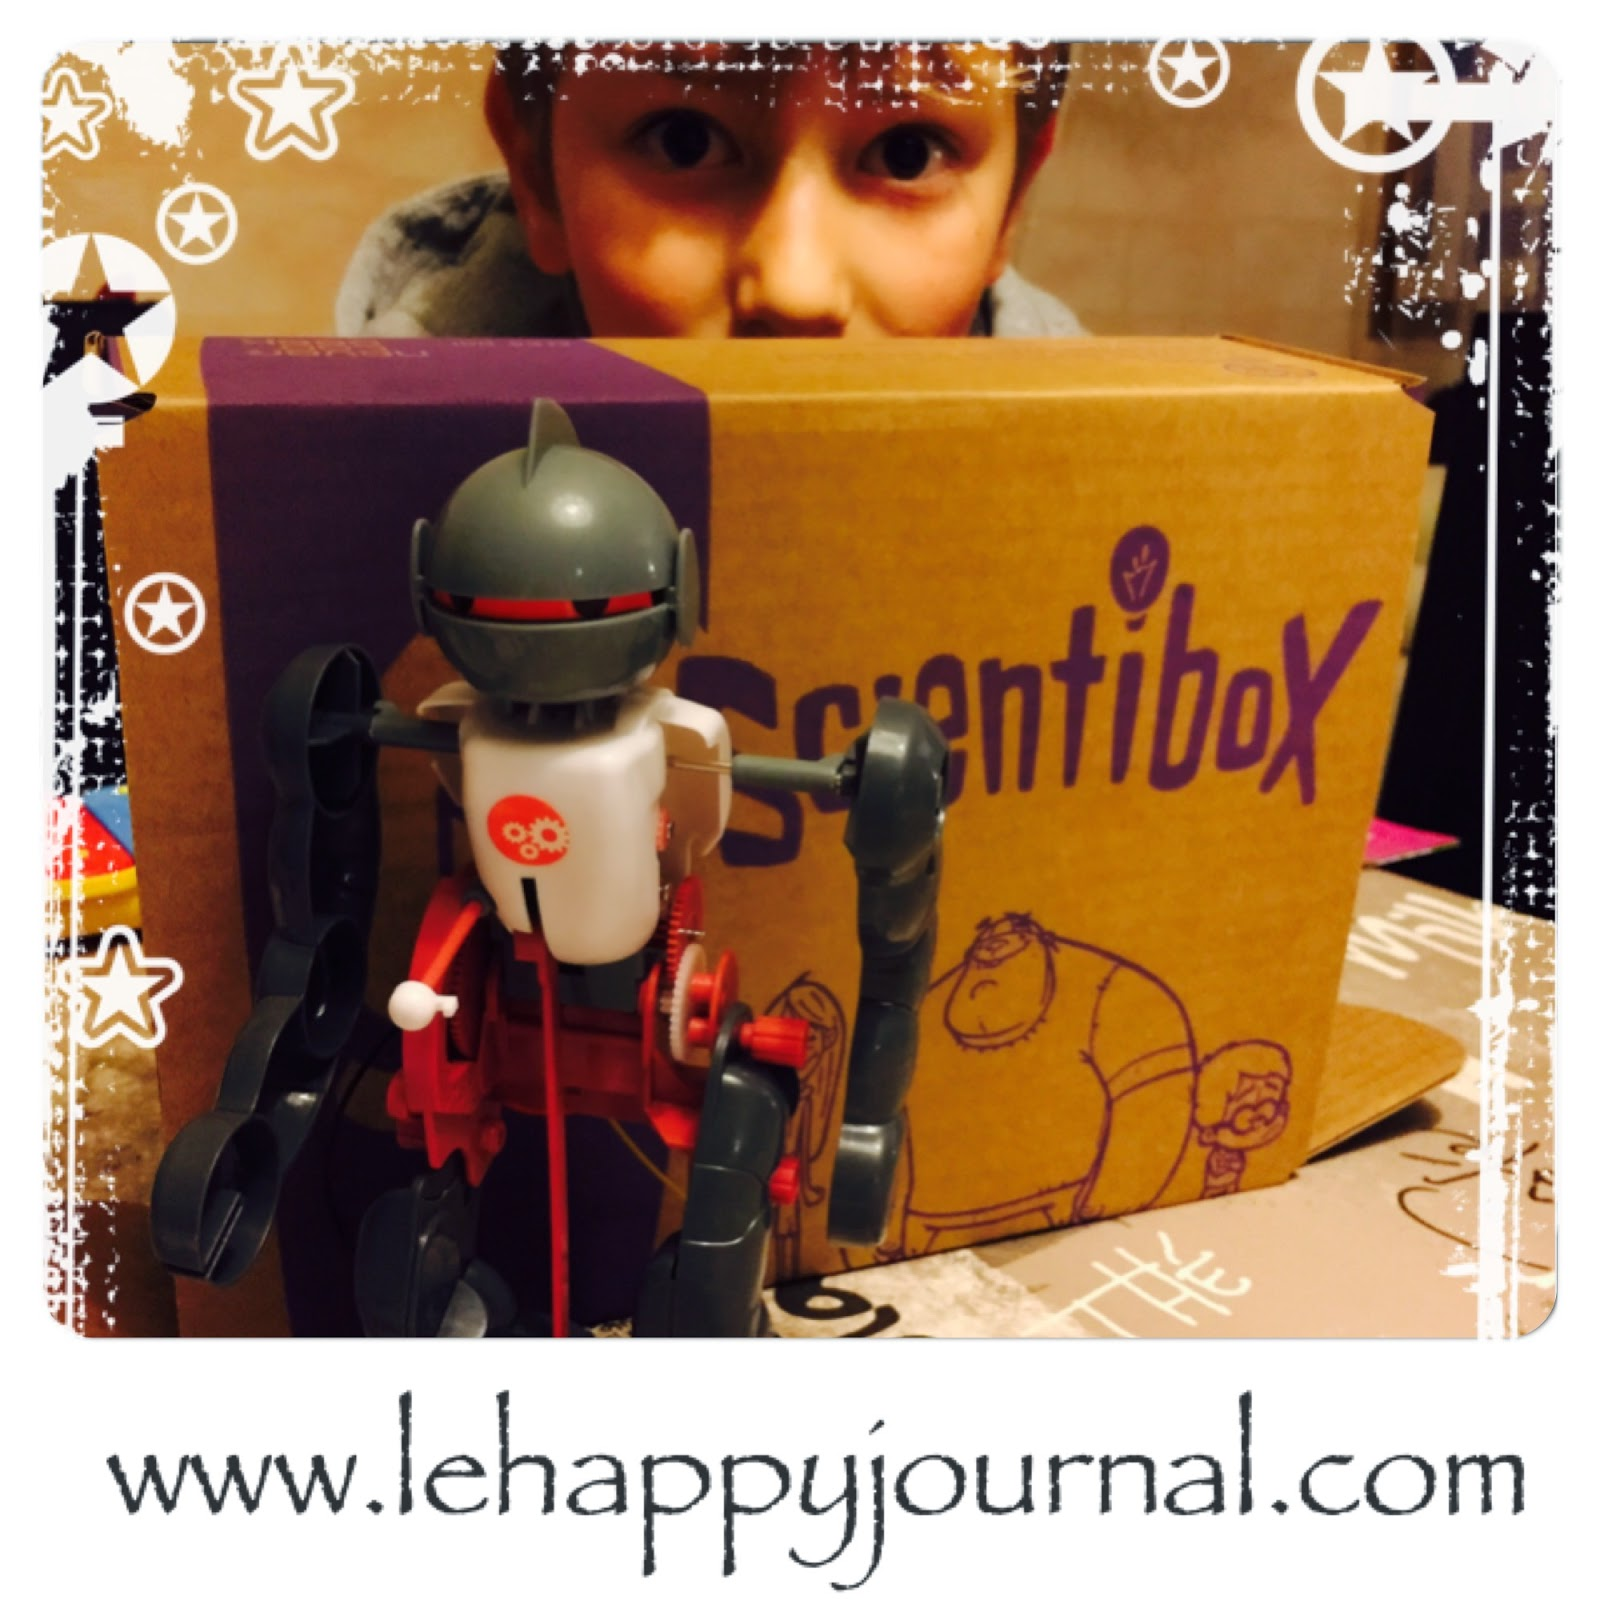 scientibox, robot, activité, box, happy journal, vidéos, construction